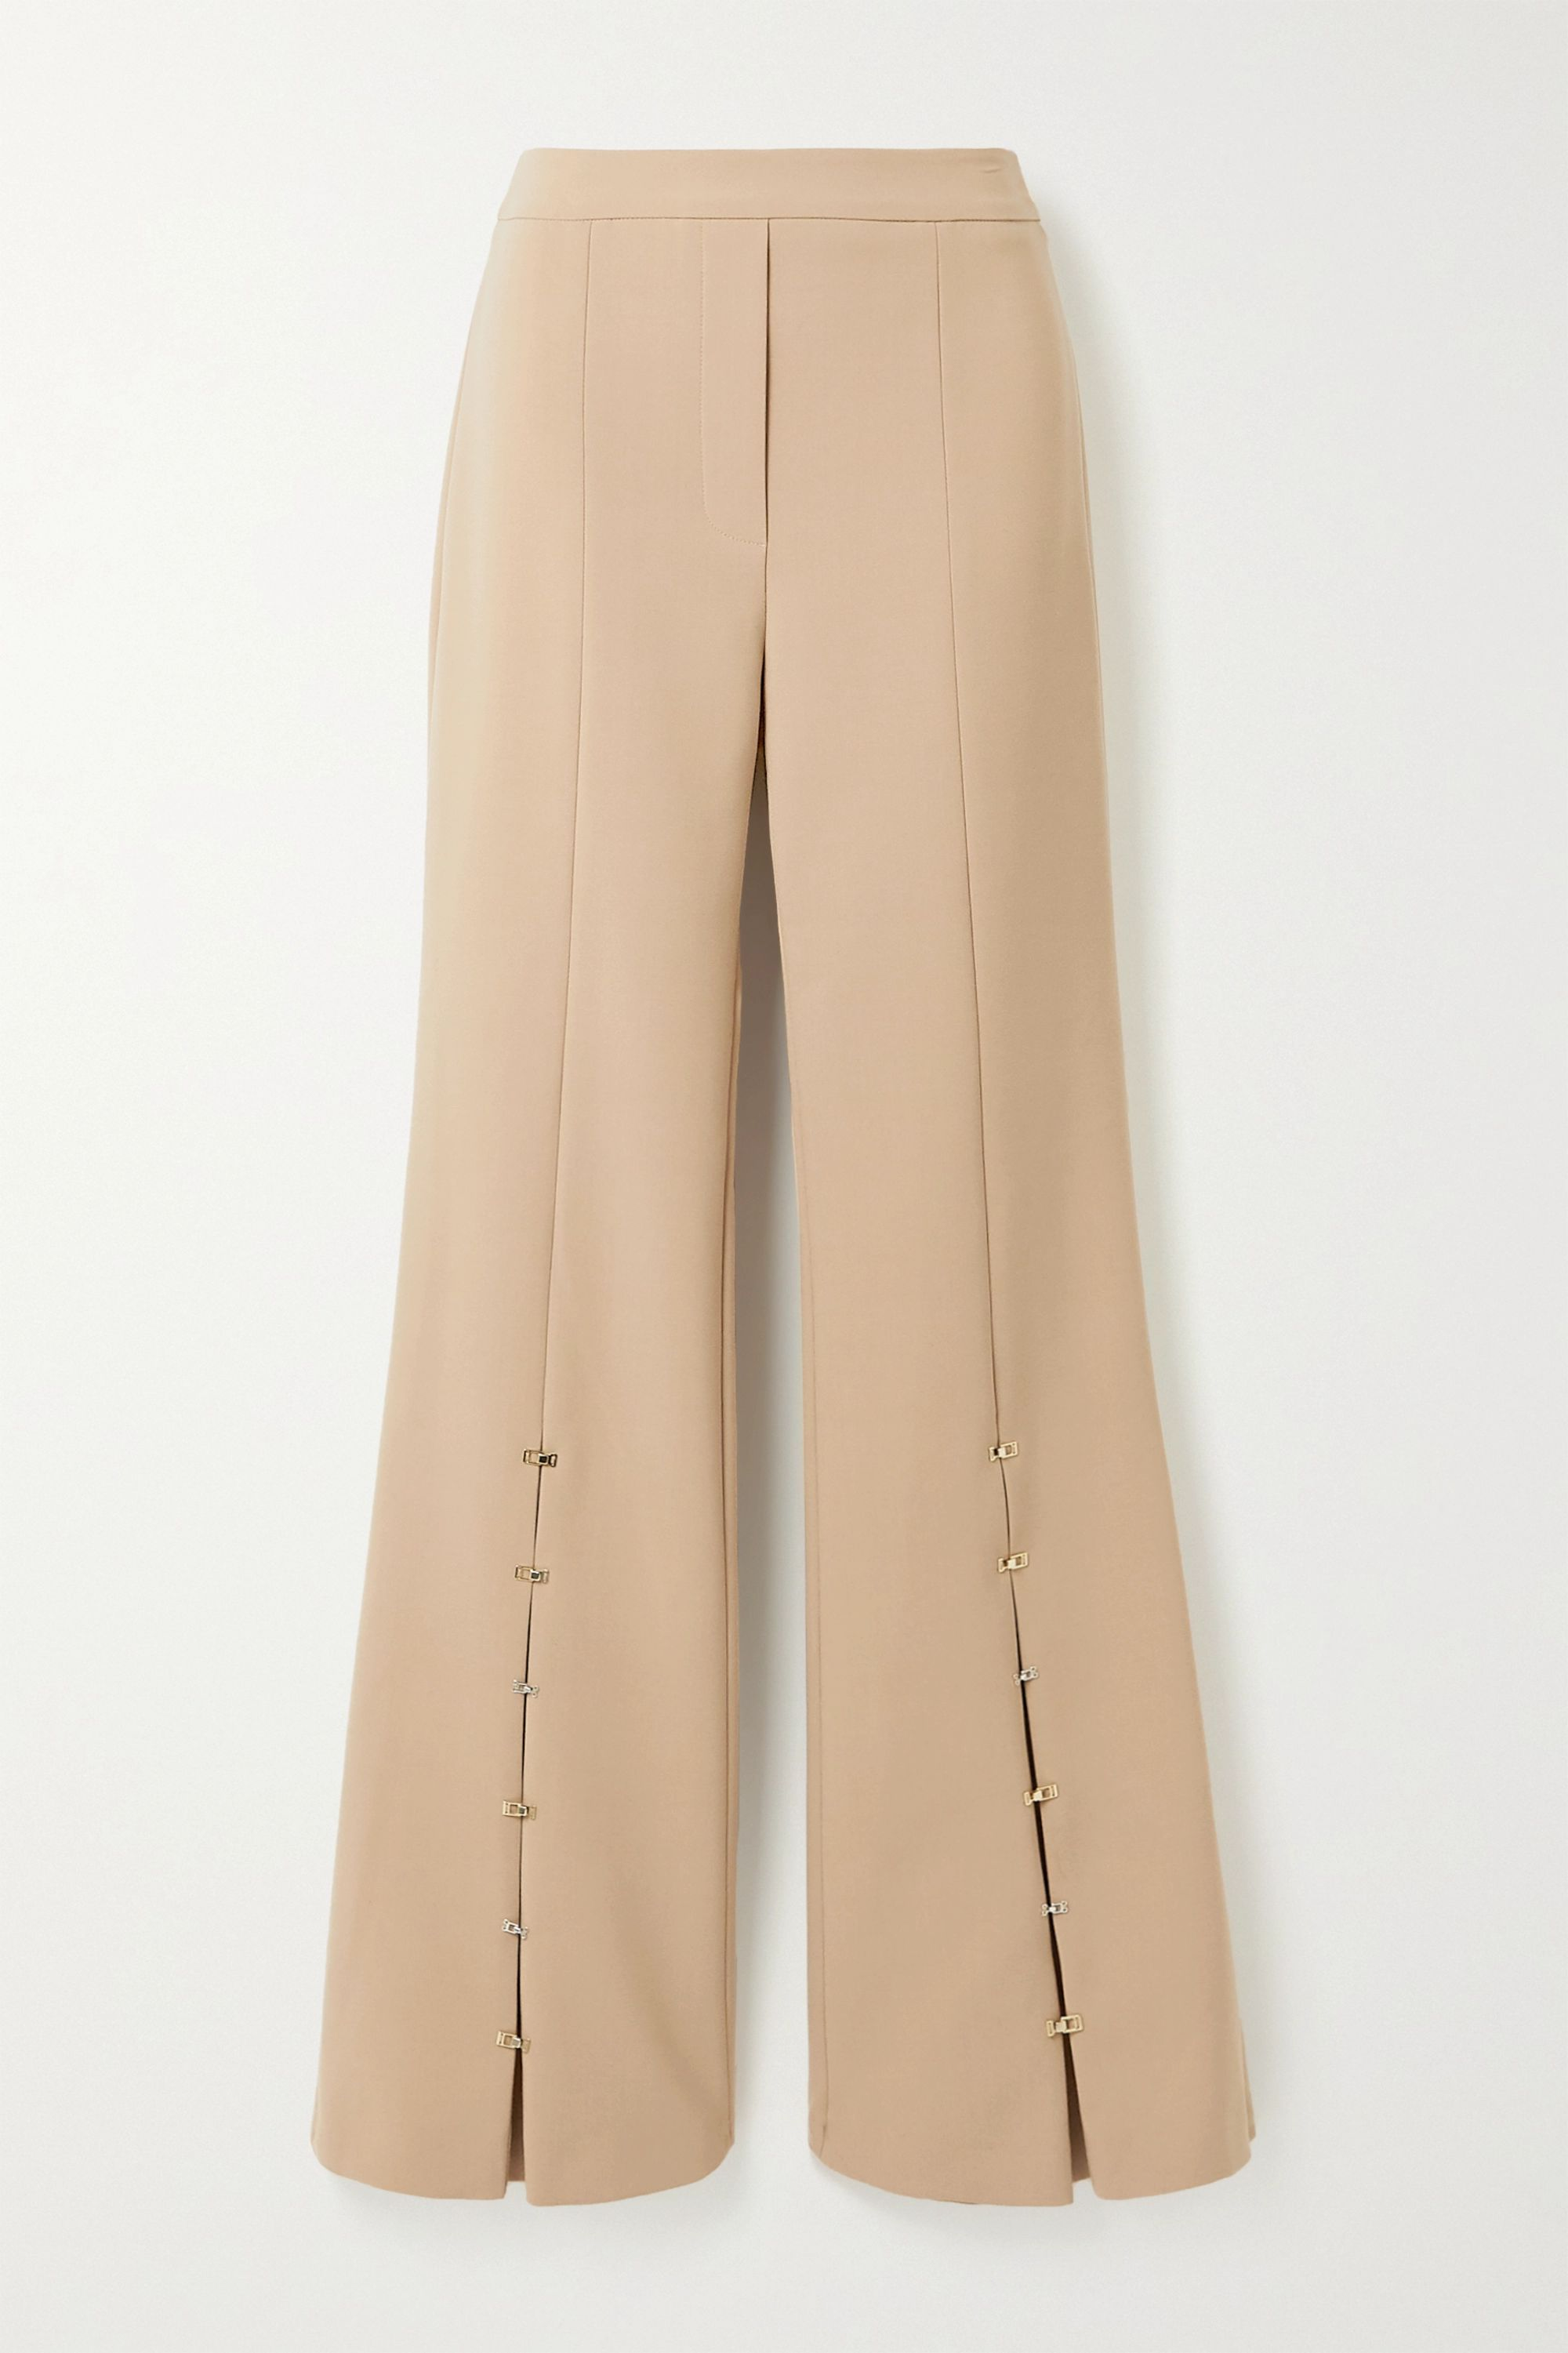 Ellery Spartans woven flared pants